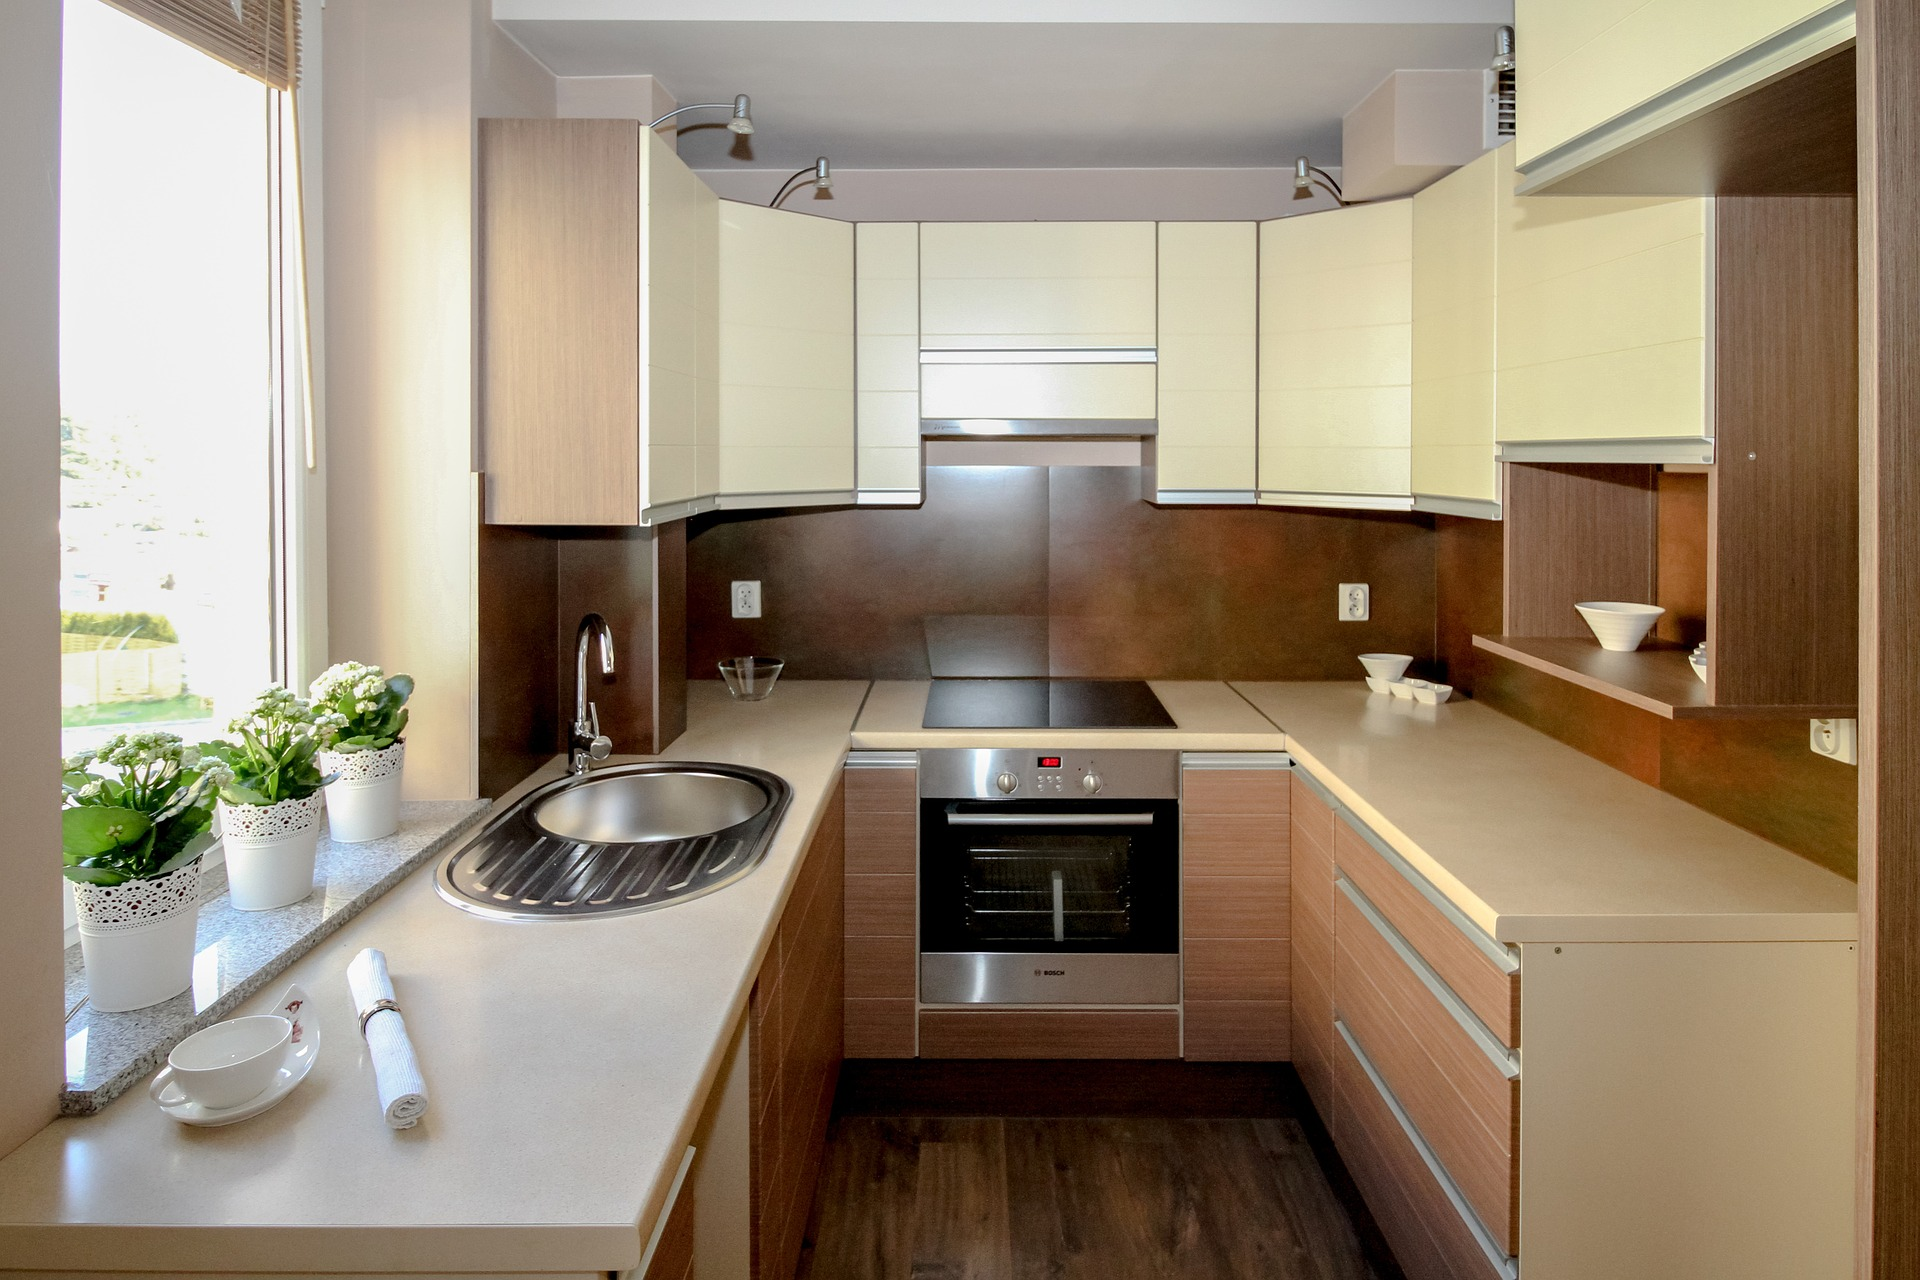 Tips on Keeping Your Apartment Clean